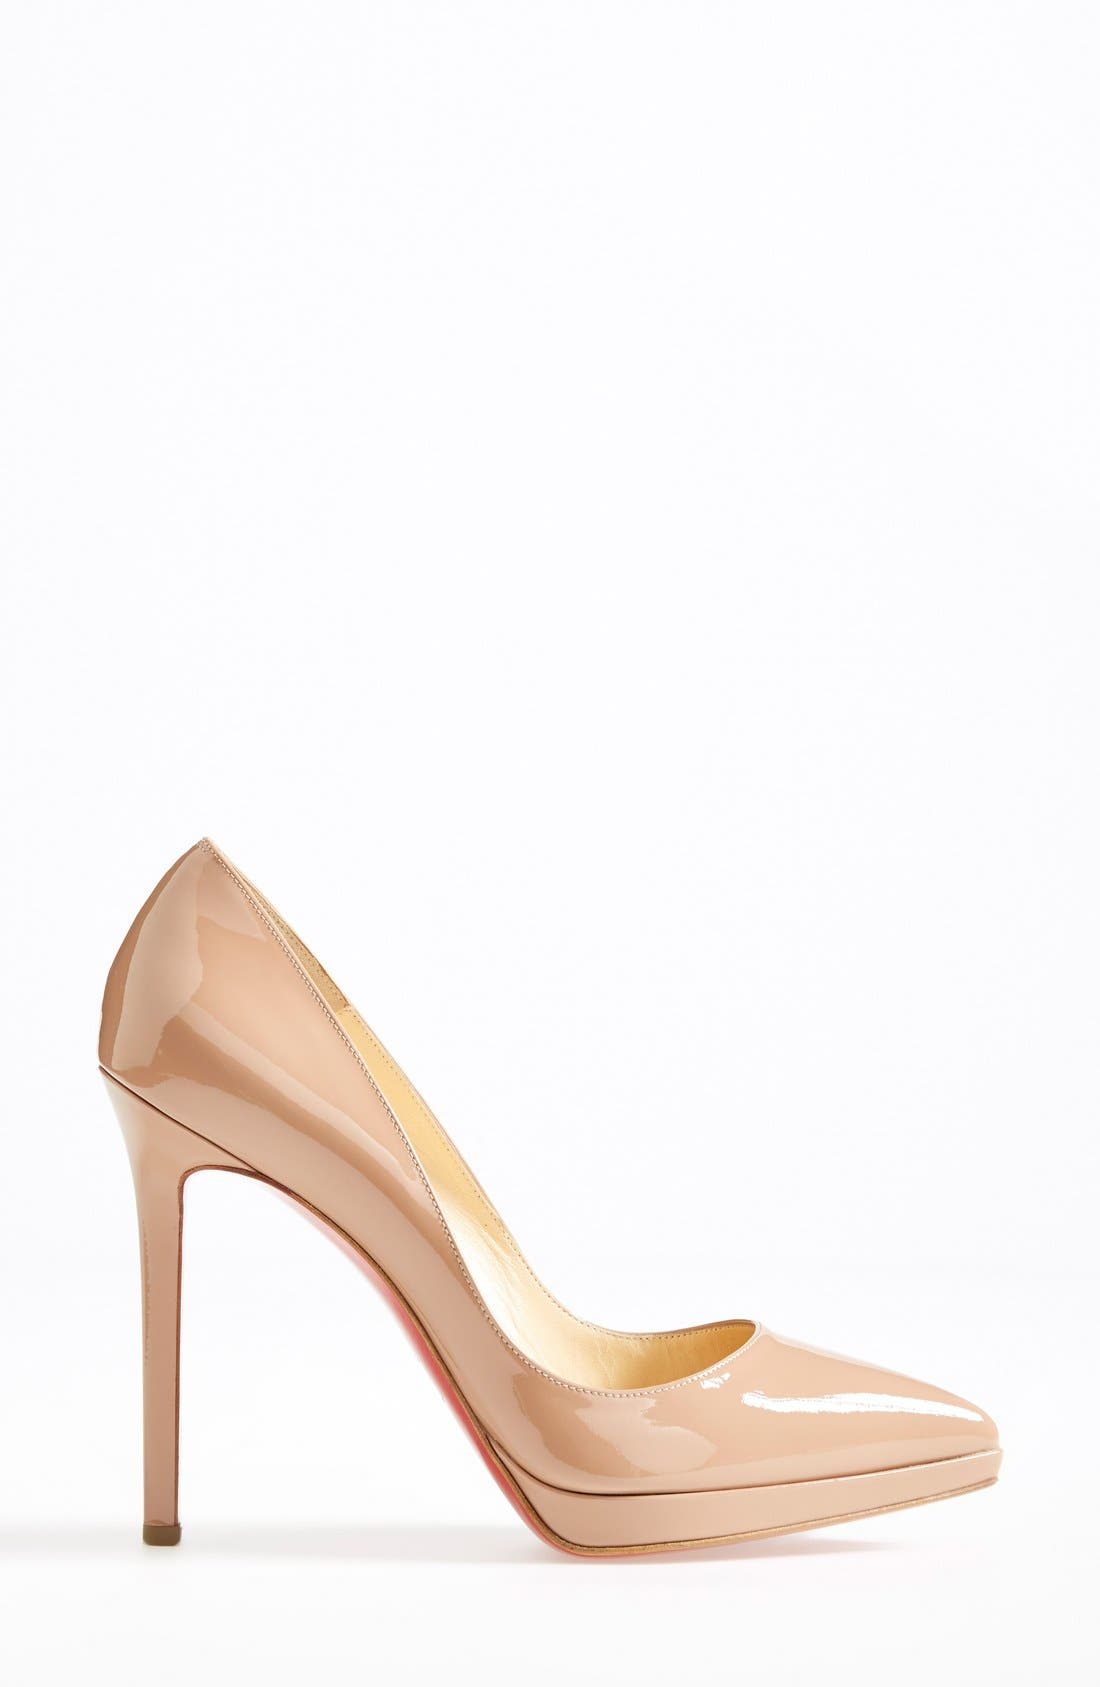 'Pigalle Plato' Pointy Toe Pump,                             Alternate thumbnail 4, color,